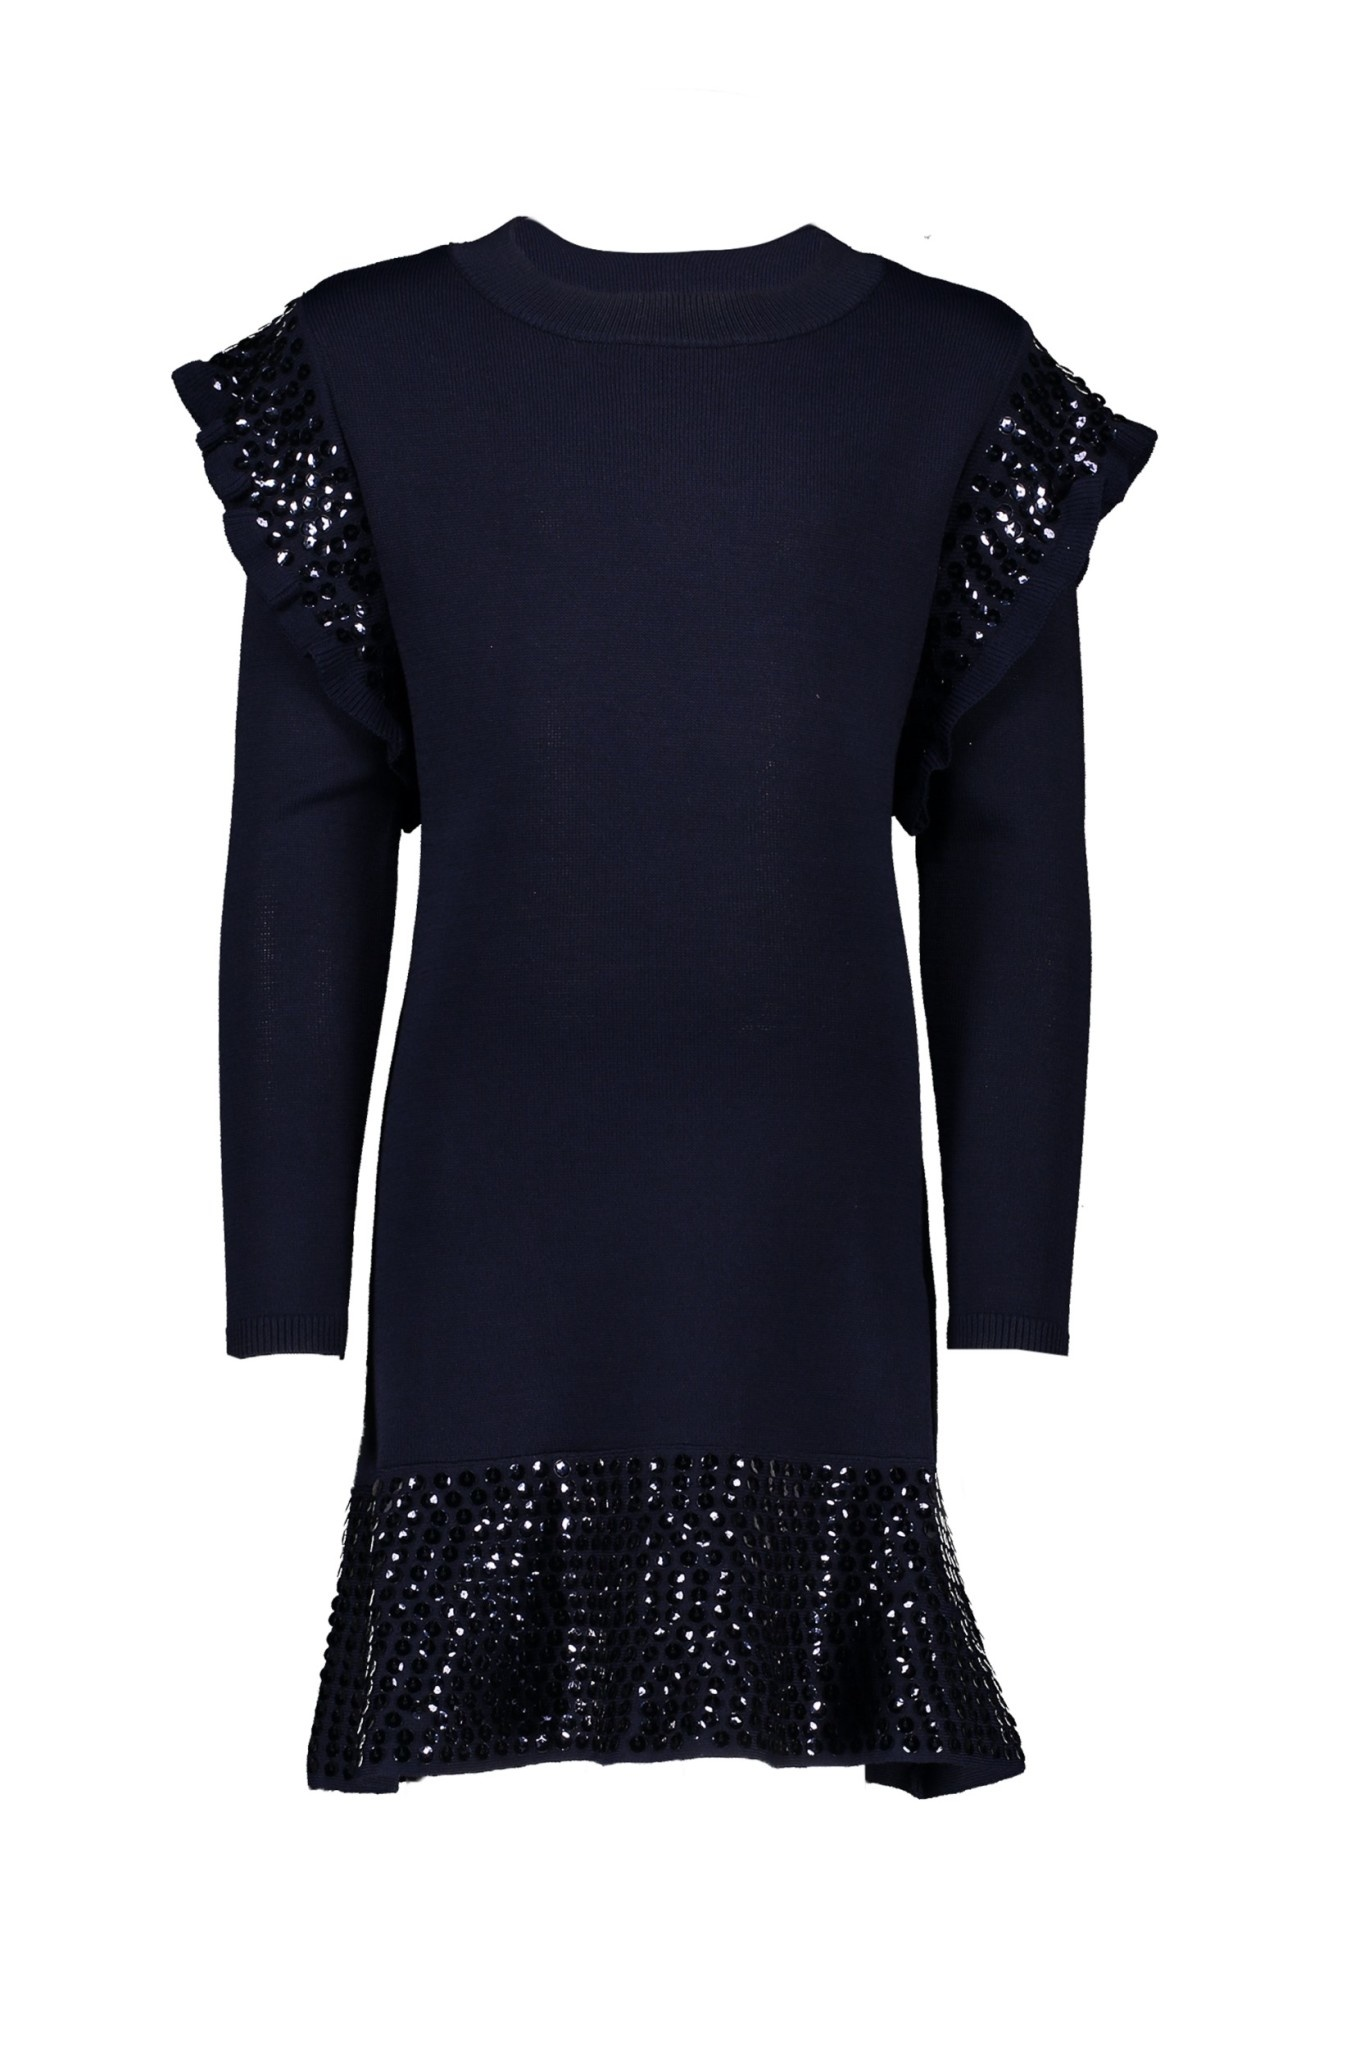 Lechic Le Chic Navy Knit Dress with Sequins